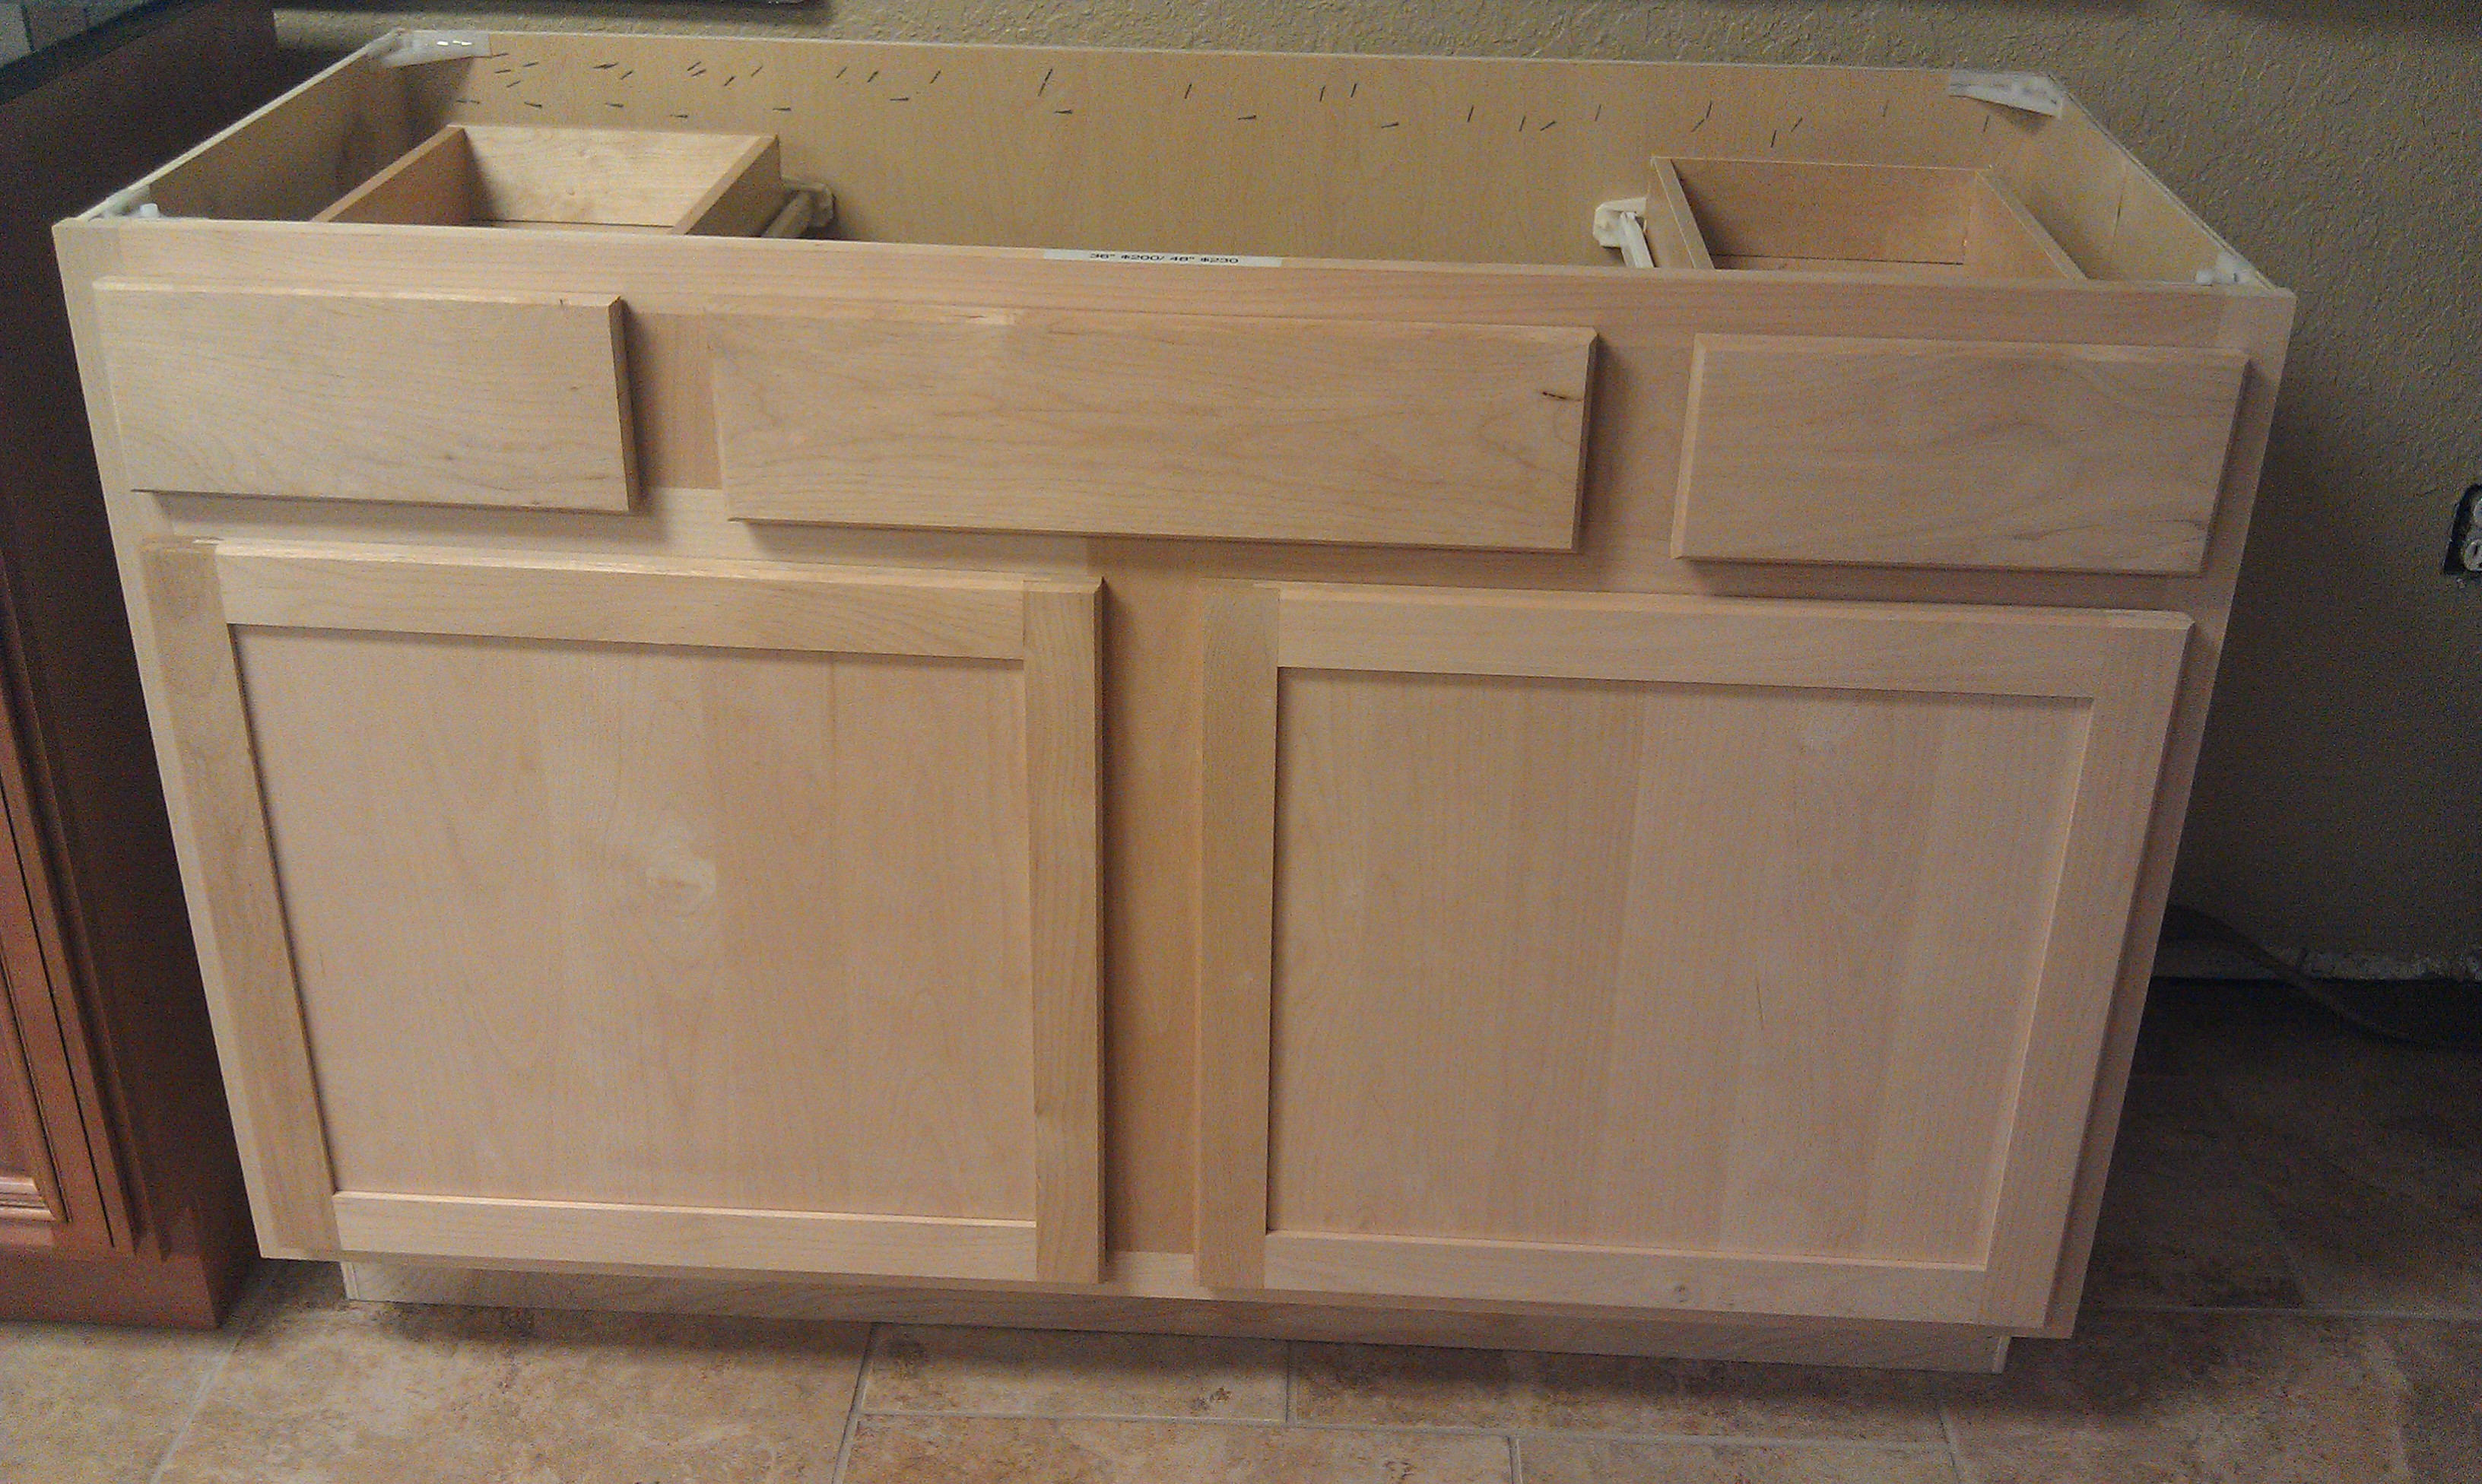 Unfinished Shaker Style All Wood Cabinets In Stock